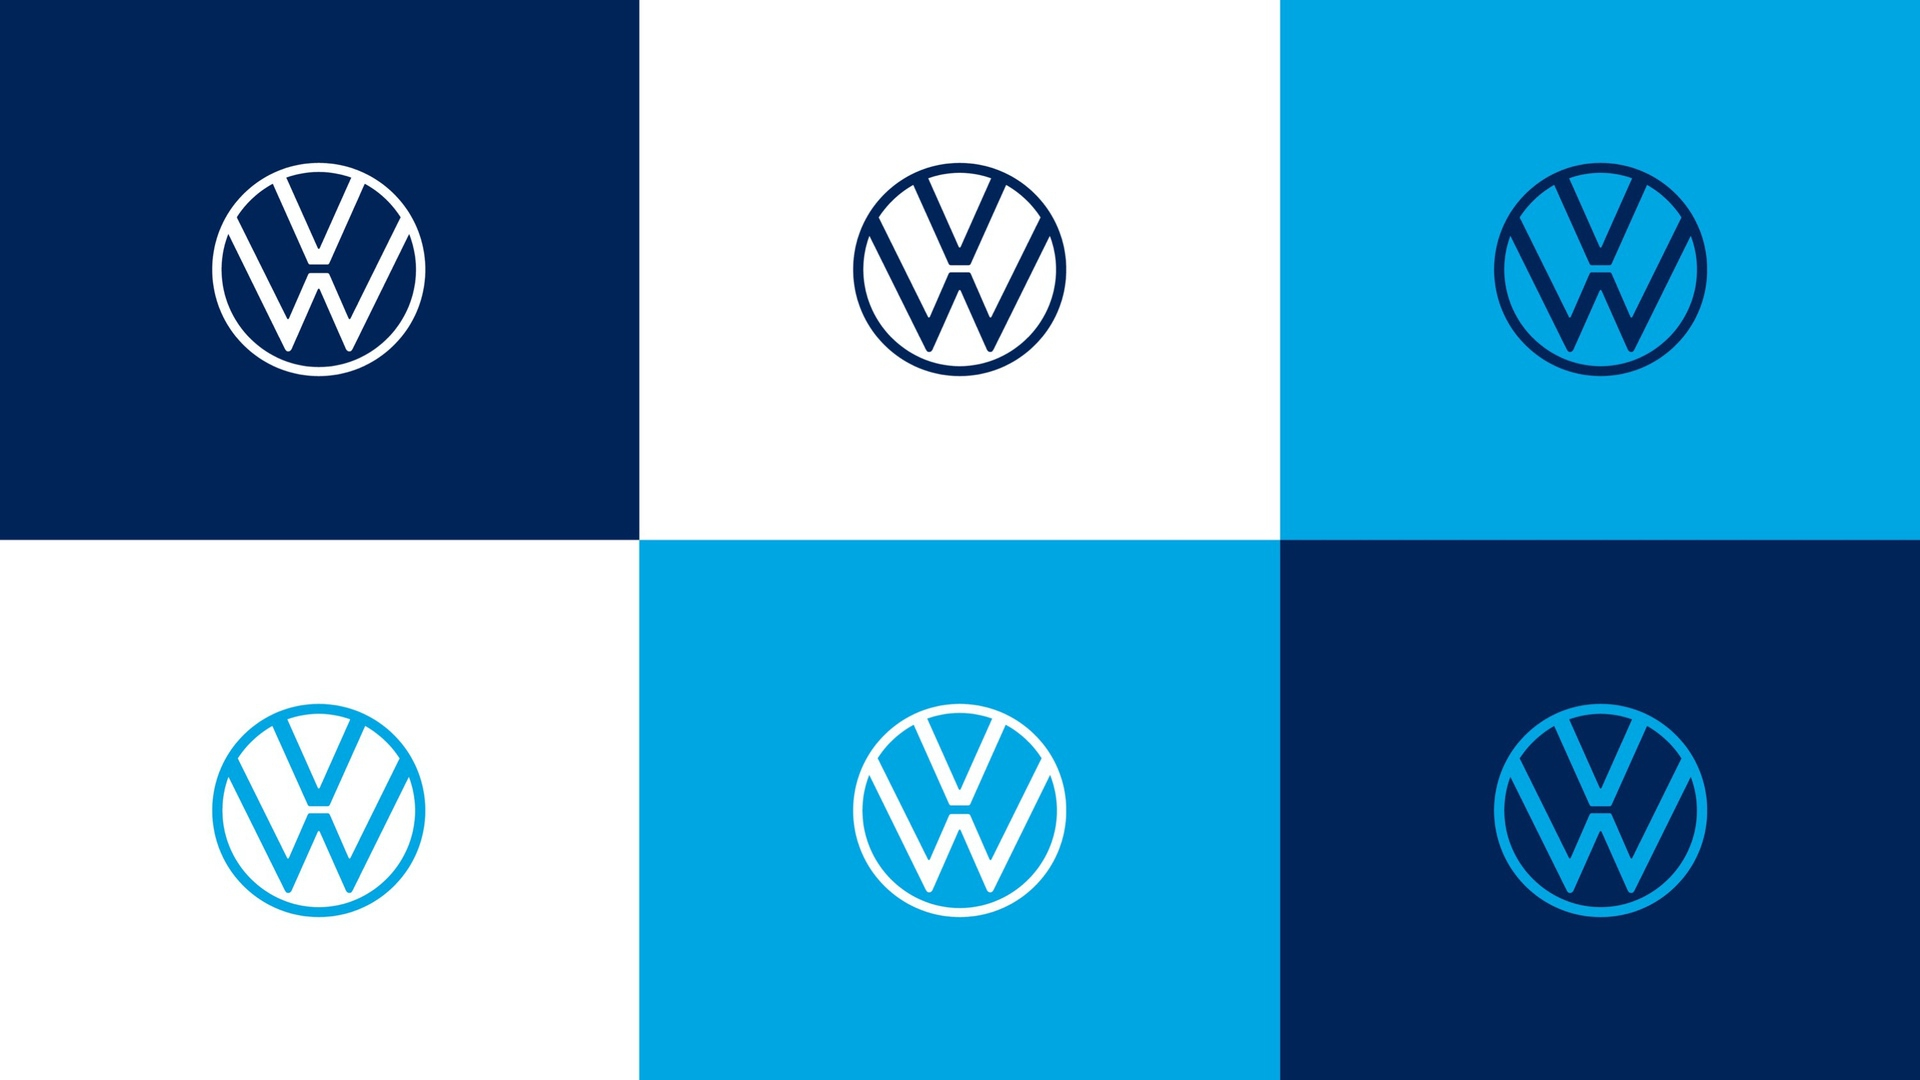 New_VW_logo_0002